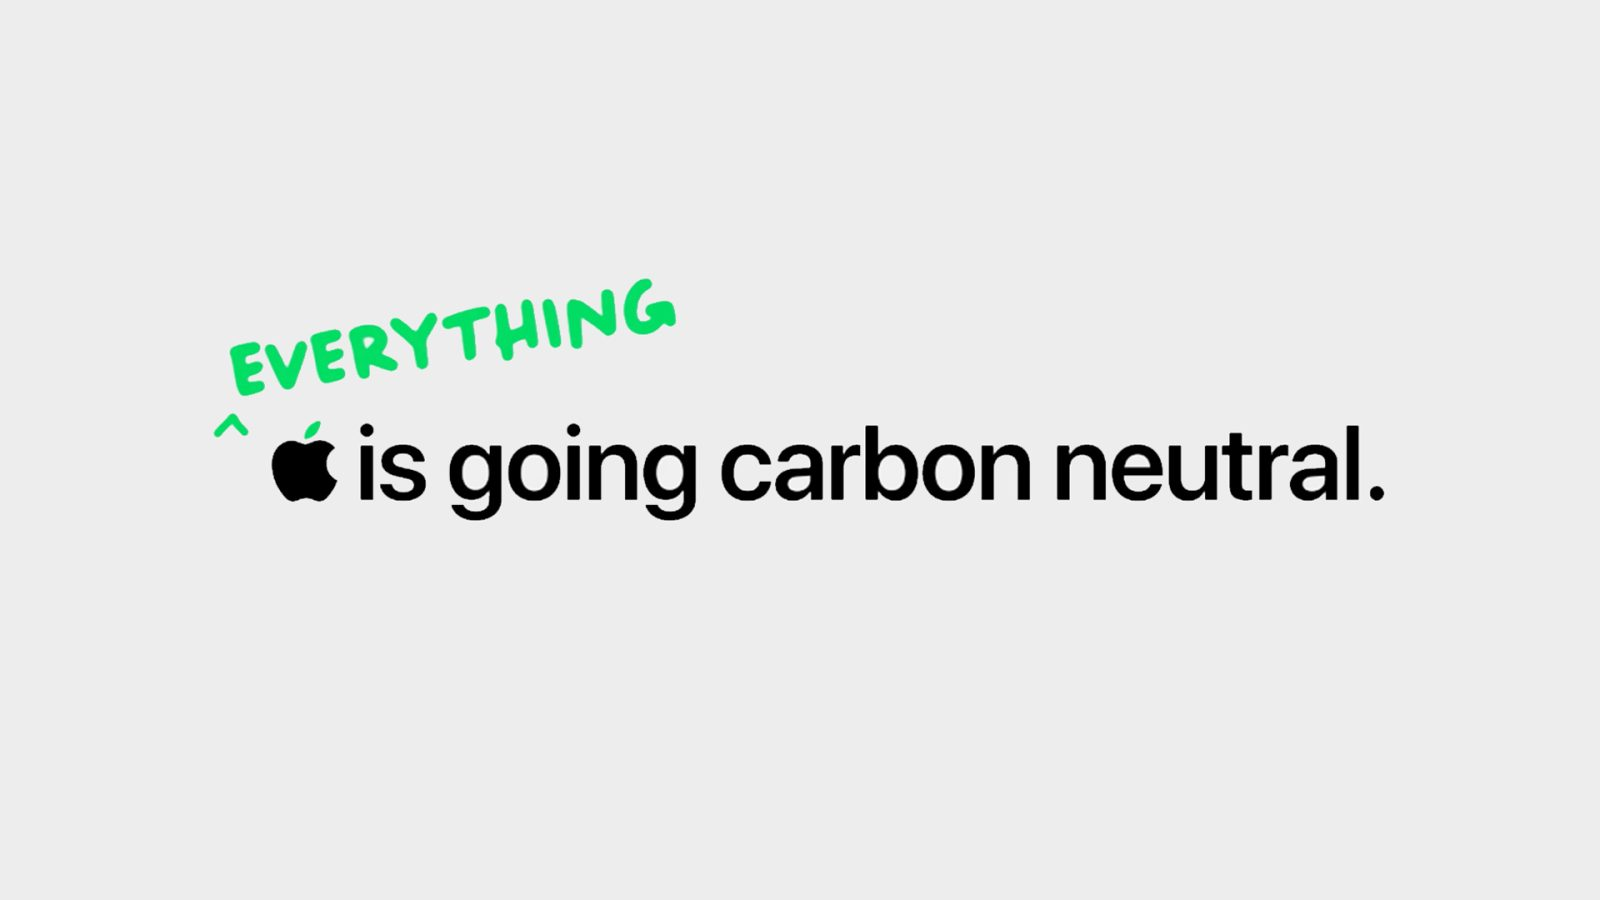 Apple touts its 2030 carbon neutral goal in new Earth Day video